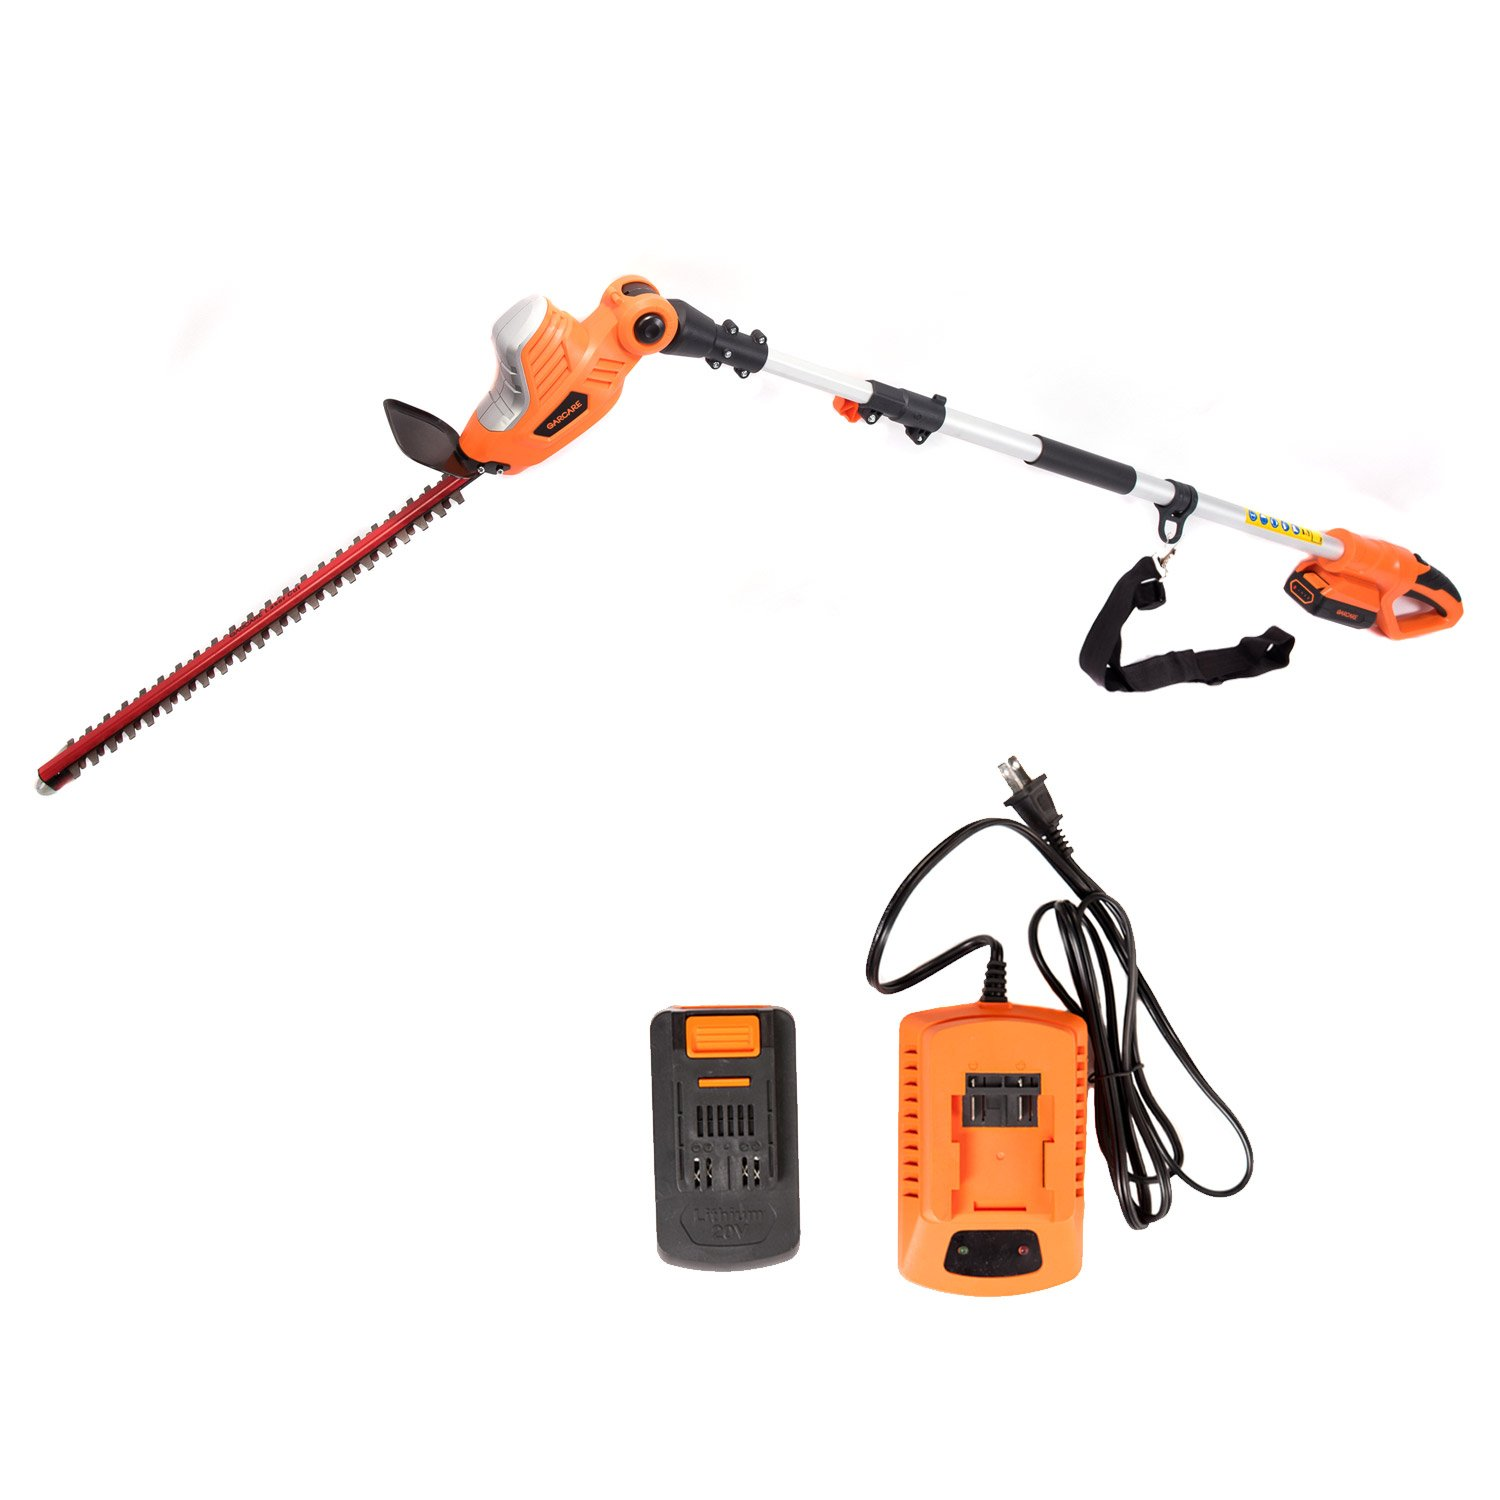 GARCARE 20V Li-ion Cordless Pole Hedge Trimmer with 20-Inch Laser Cutting Blade GCPHT08